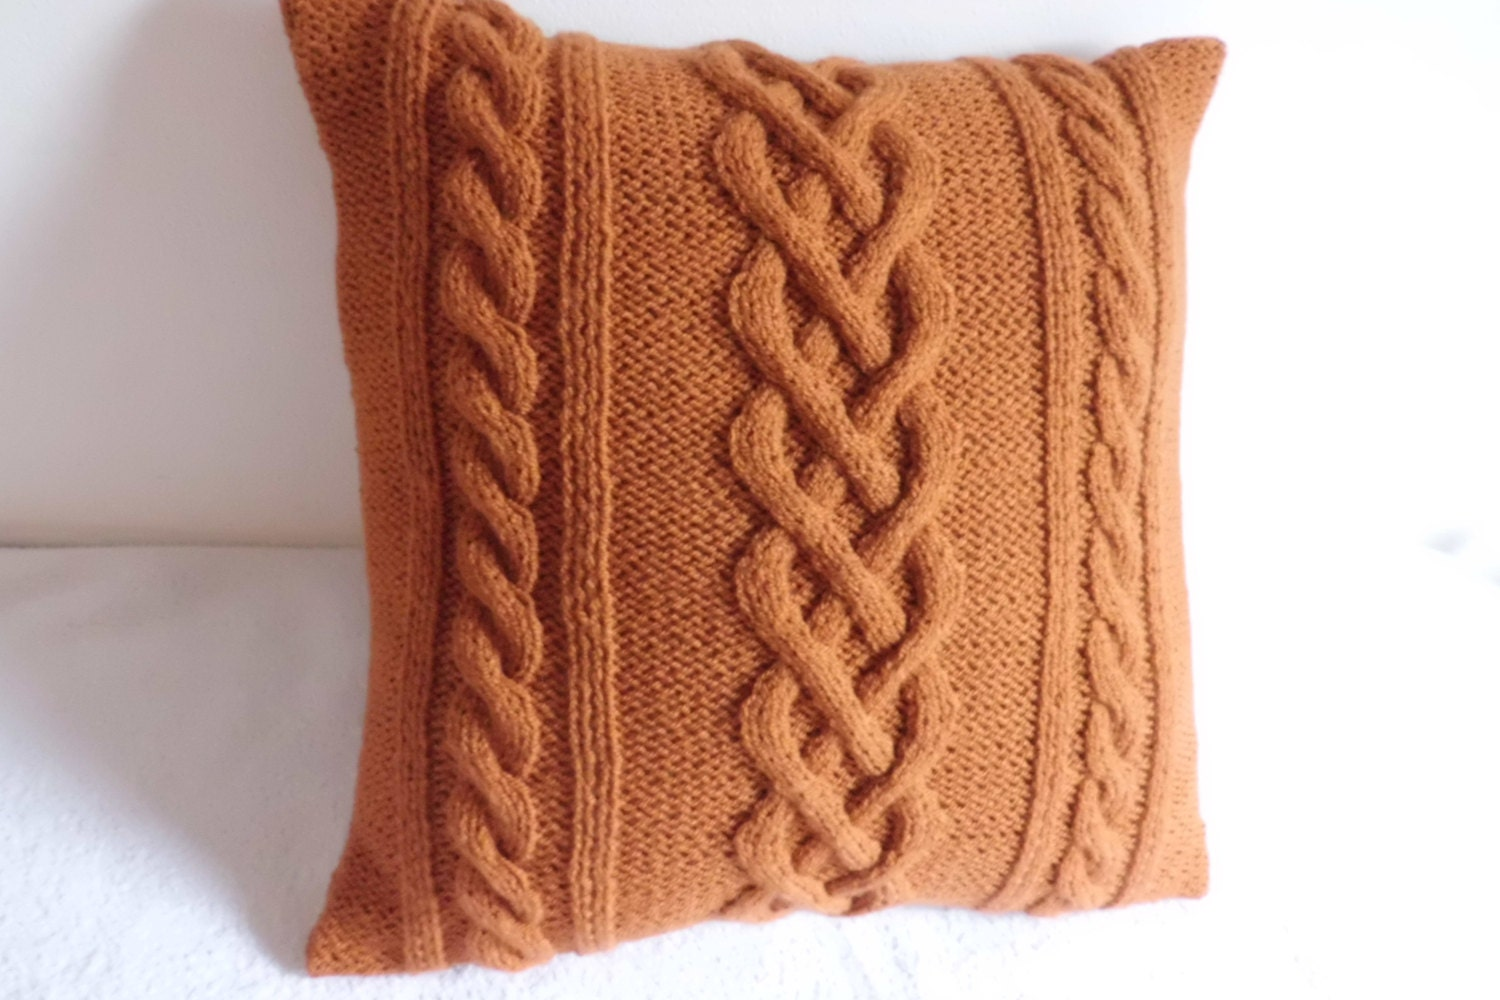 Knitting Pillows : Burned orange cable knit pillow case throw knitted